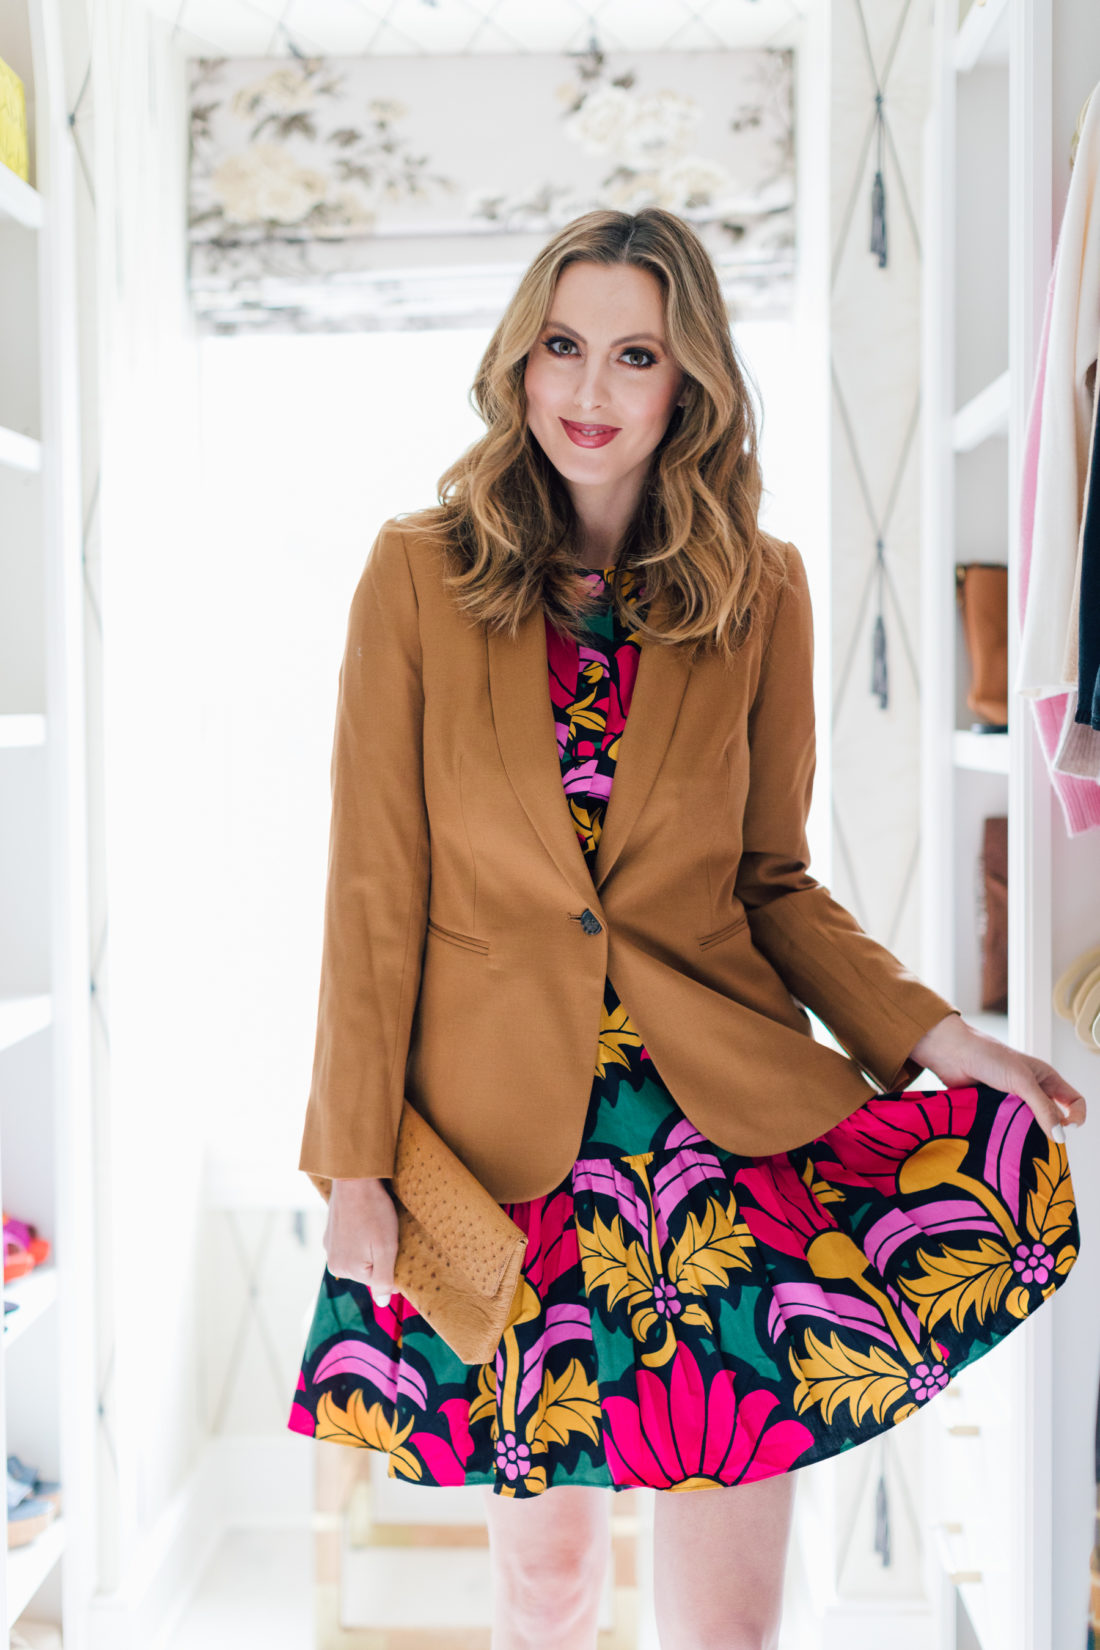 Eva Amurri Martino wears a colorful dress under a fall blazer inside her walk-in closet